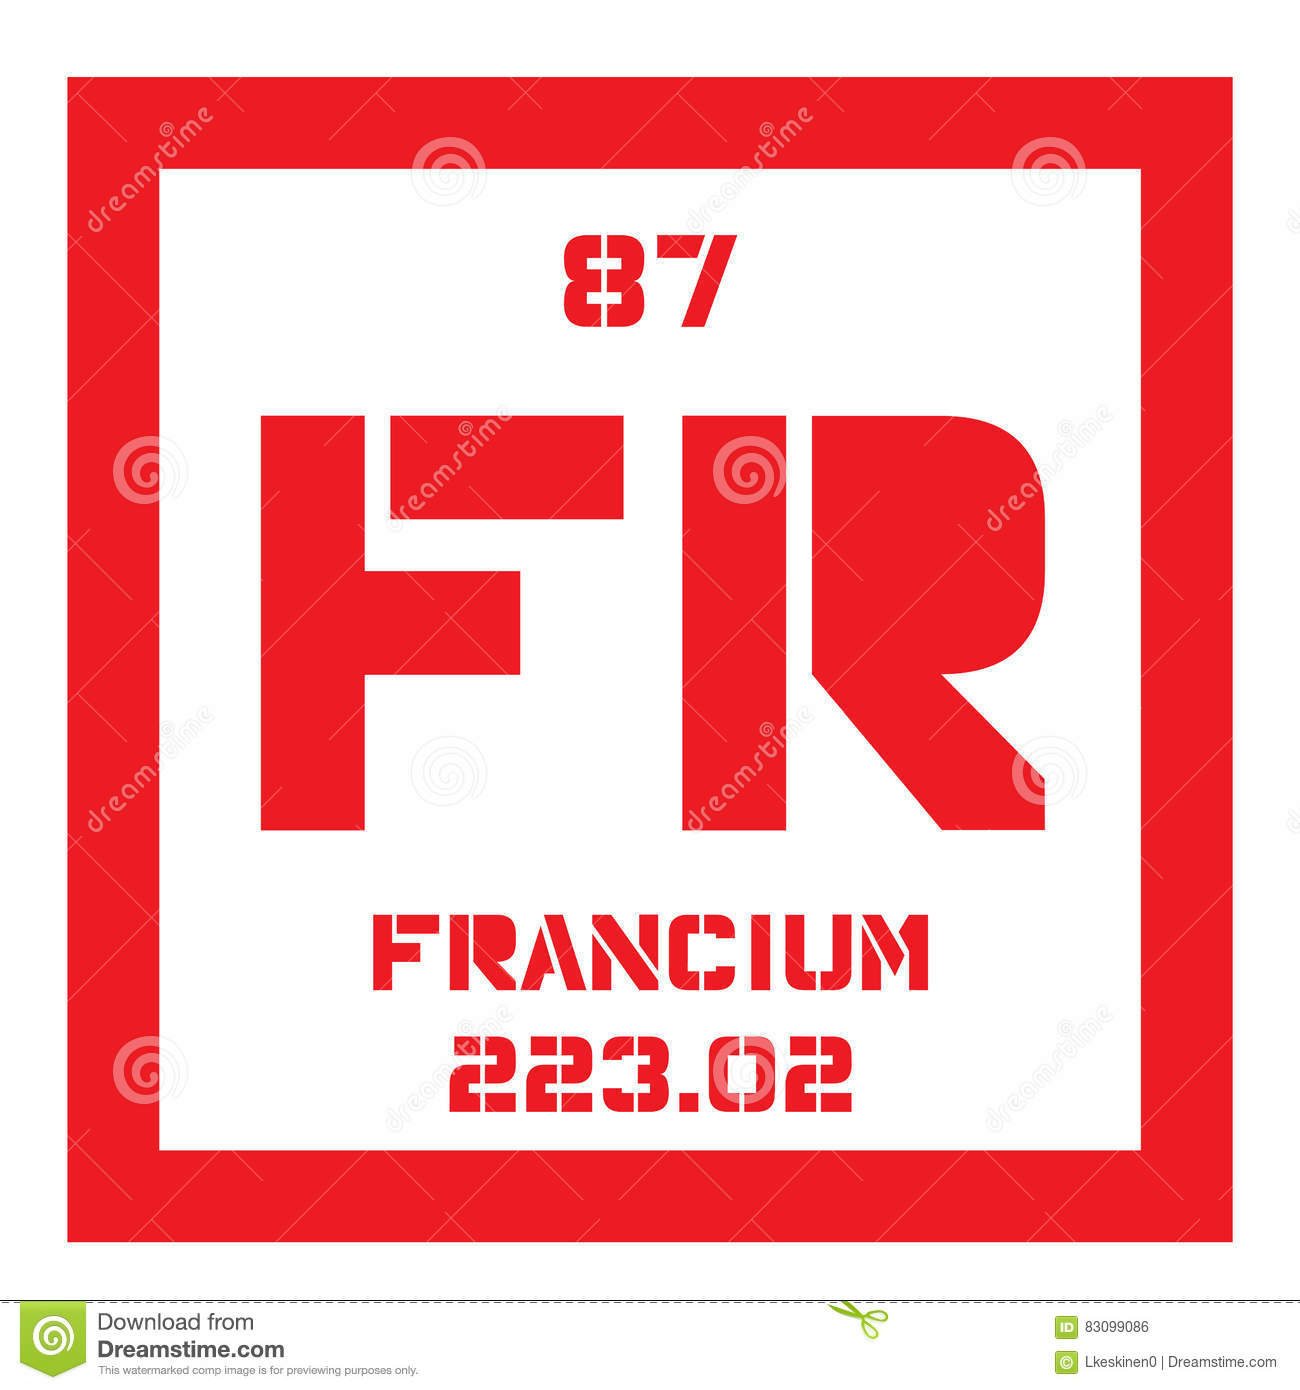 Francium chemisch element